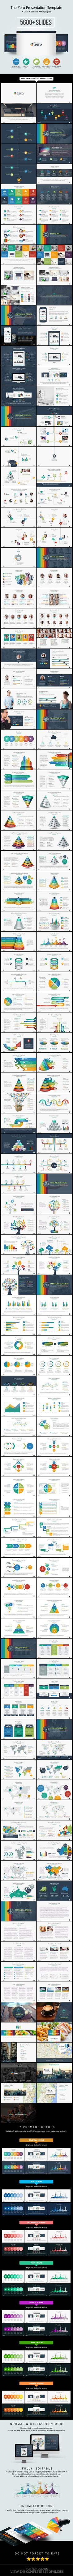 The Zero Business Infographic Presentation - Business PowerPoint Templates